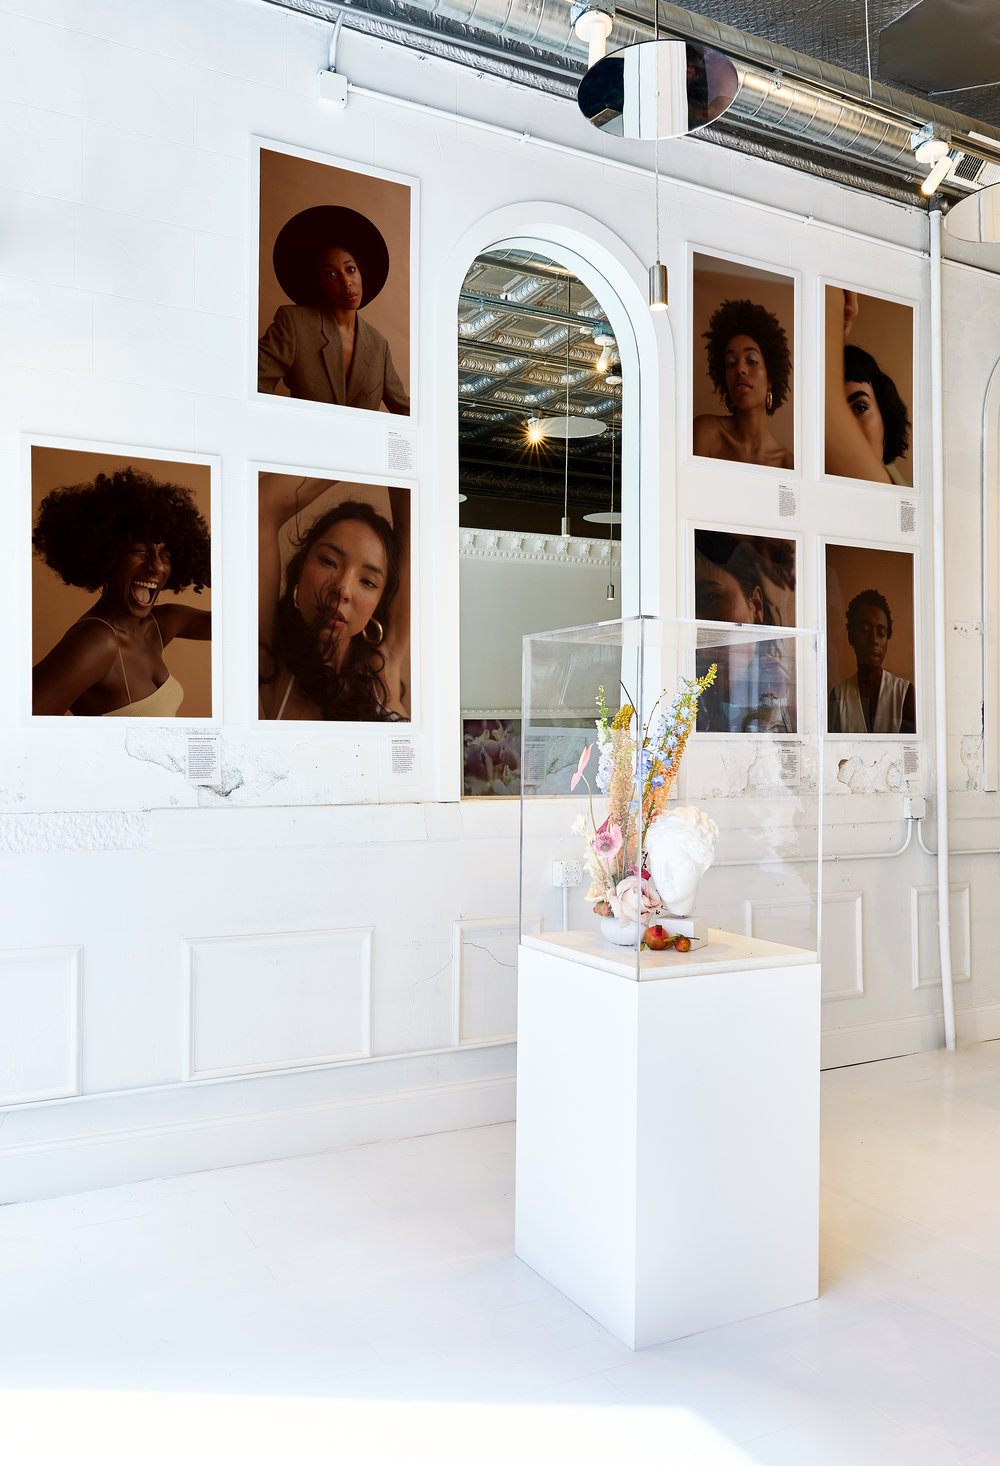 Glossier Chicago, design by Glossier, photography by Christian Harder